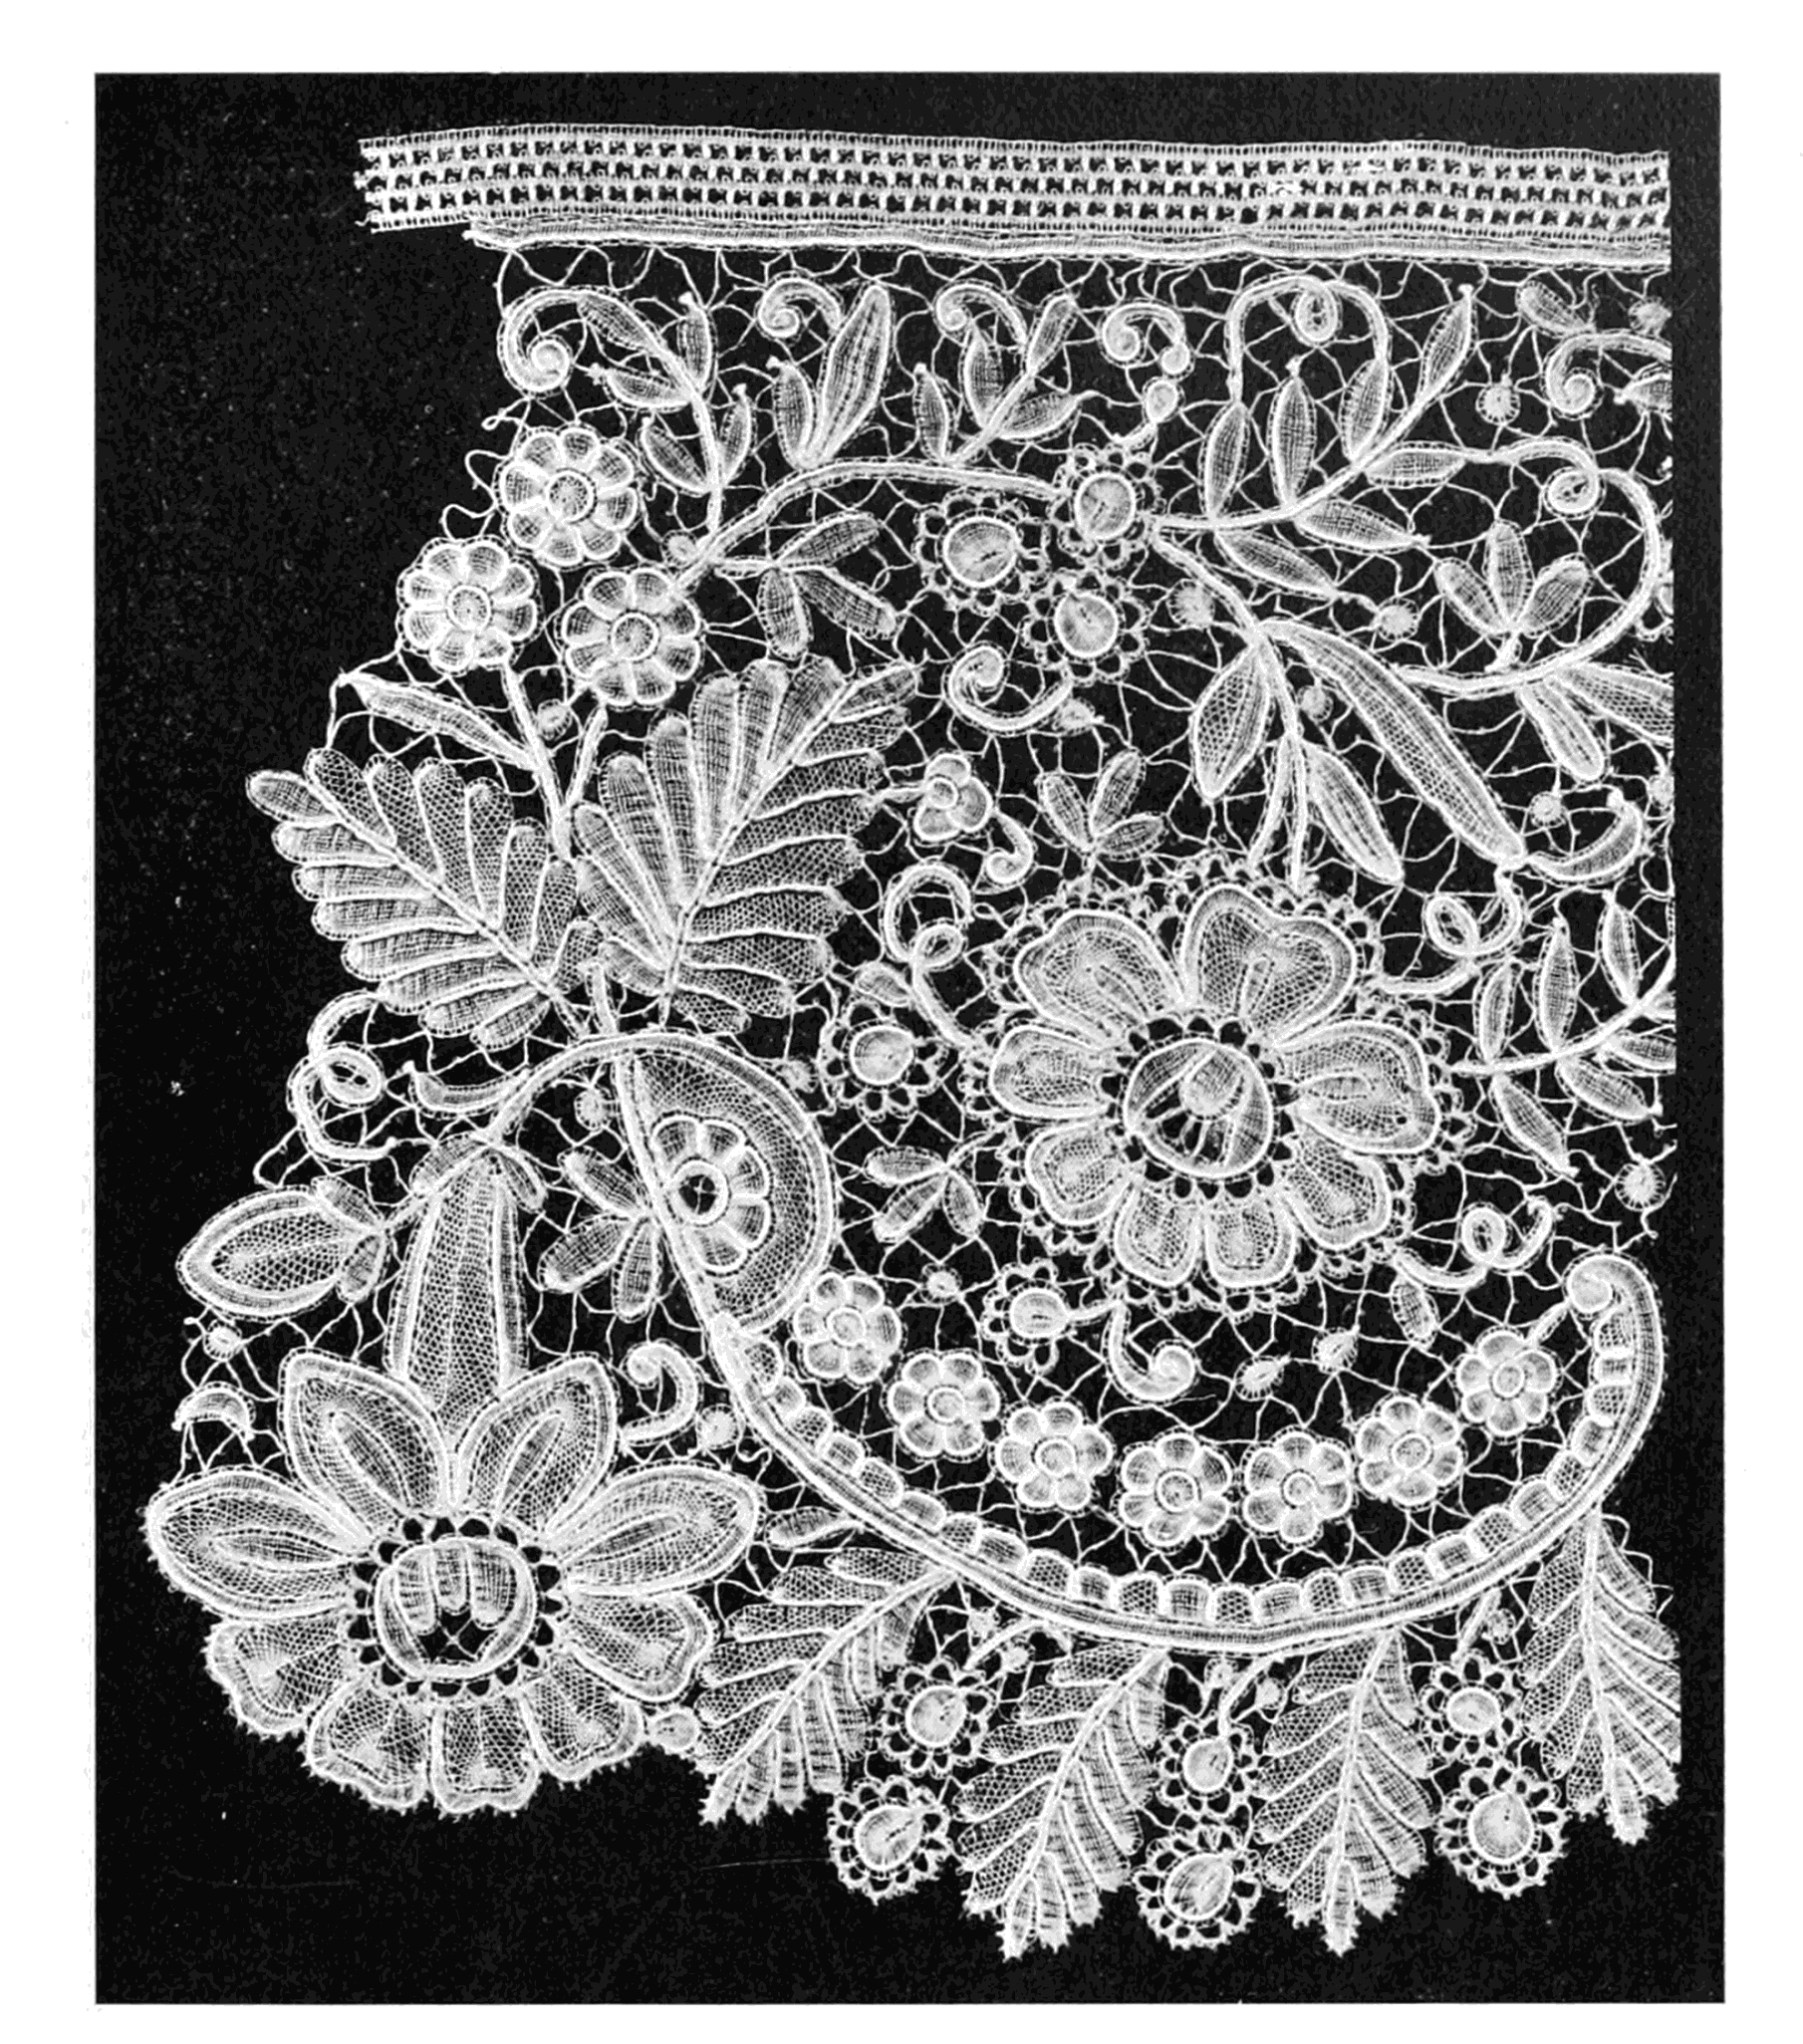 Duchesse Lace Detail, 19th century By Samuel L. Goldenberg (Lace: Its Origin and History.) Retrieved from Wikimedia Commons